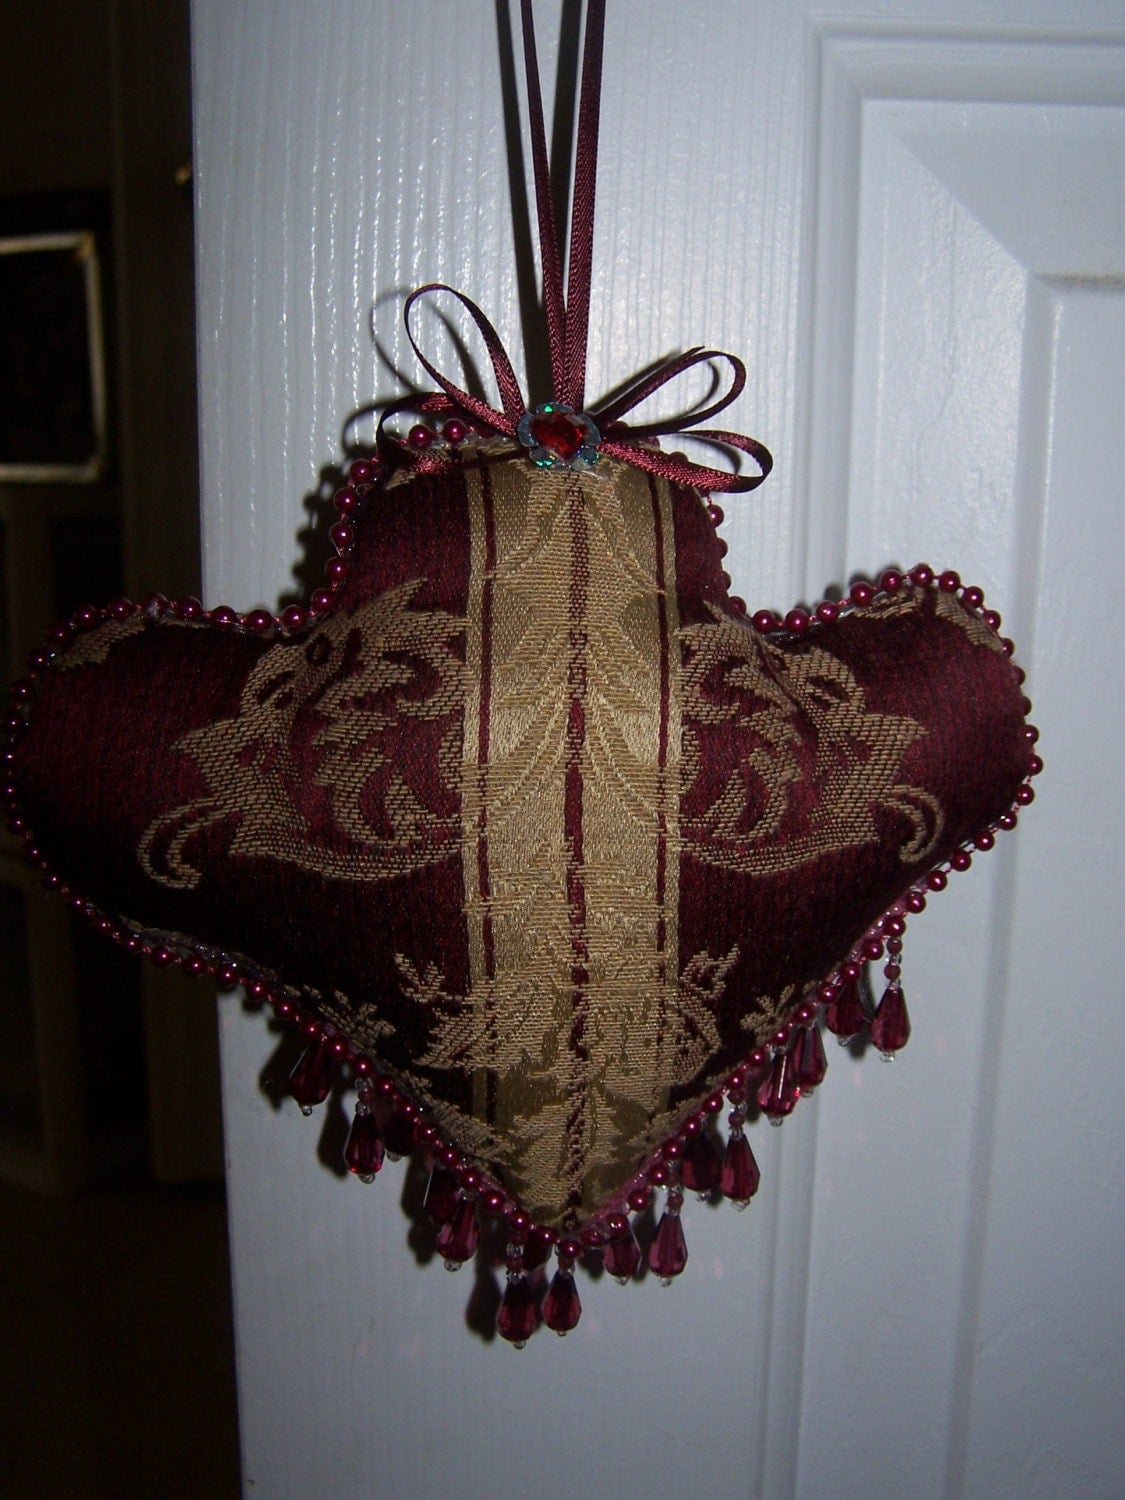 Victorian Style Pincushion Ornament Home Decor Fabric Craft Plastic Beads 7 5